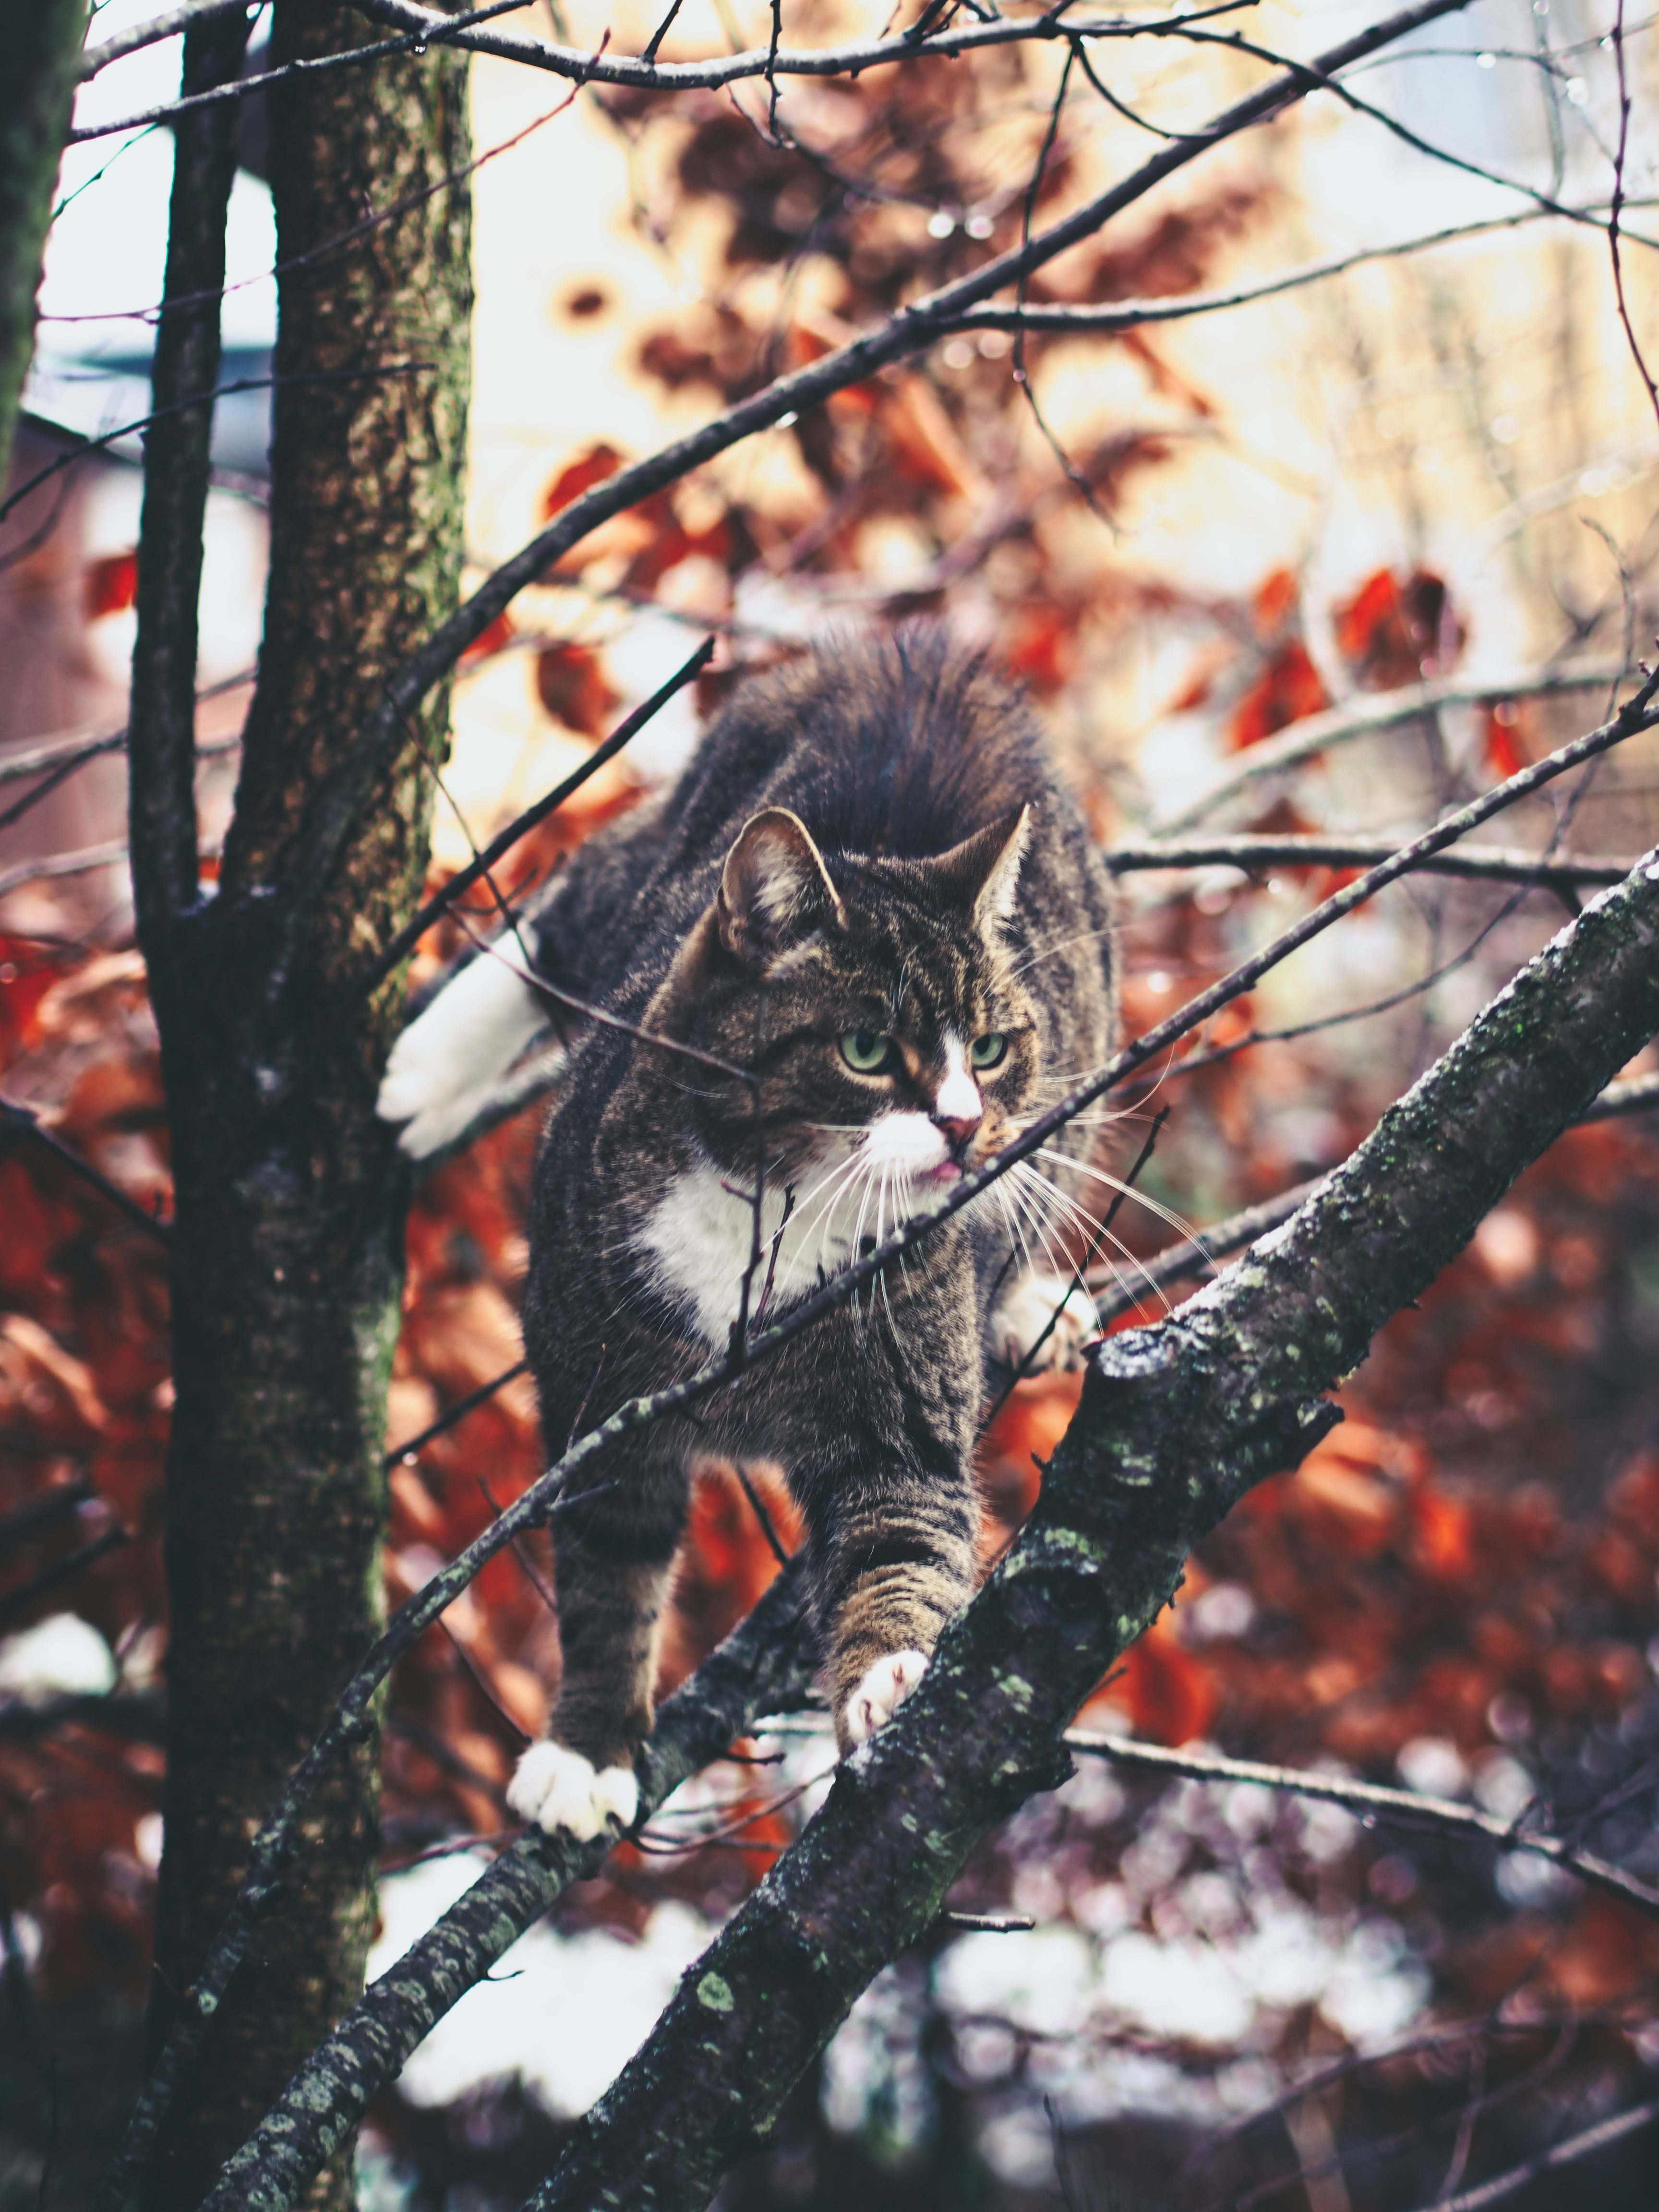 91615 download wallpaper Animals, Cat, Branches, Climb, Curiosity, Stroll screensavers and pictures for free